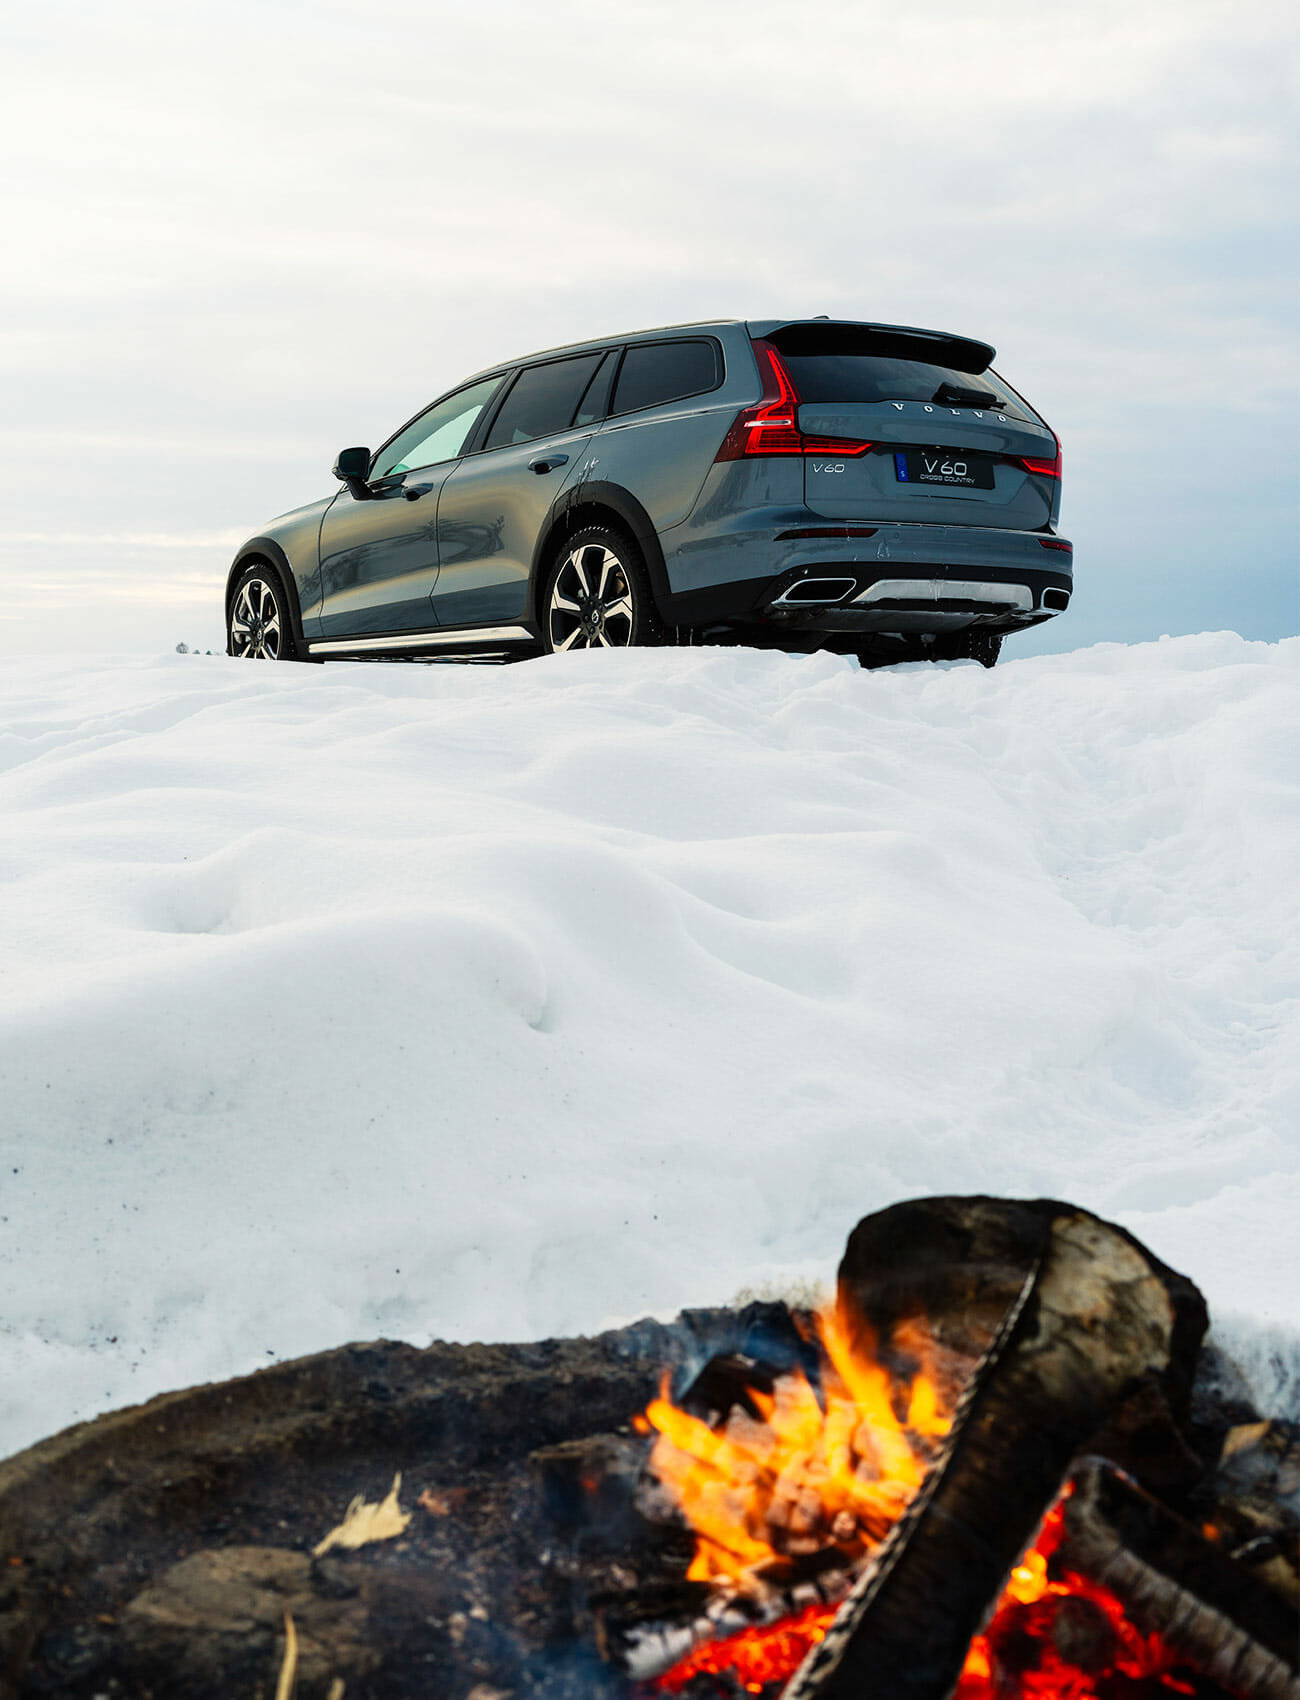 Best All Wheel Drive Cars 2020 2020 Volvo V60 Cross Country Review: Setting the AWD Bar